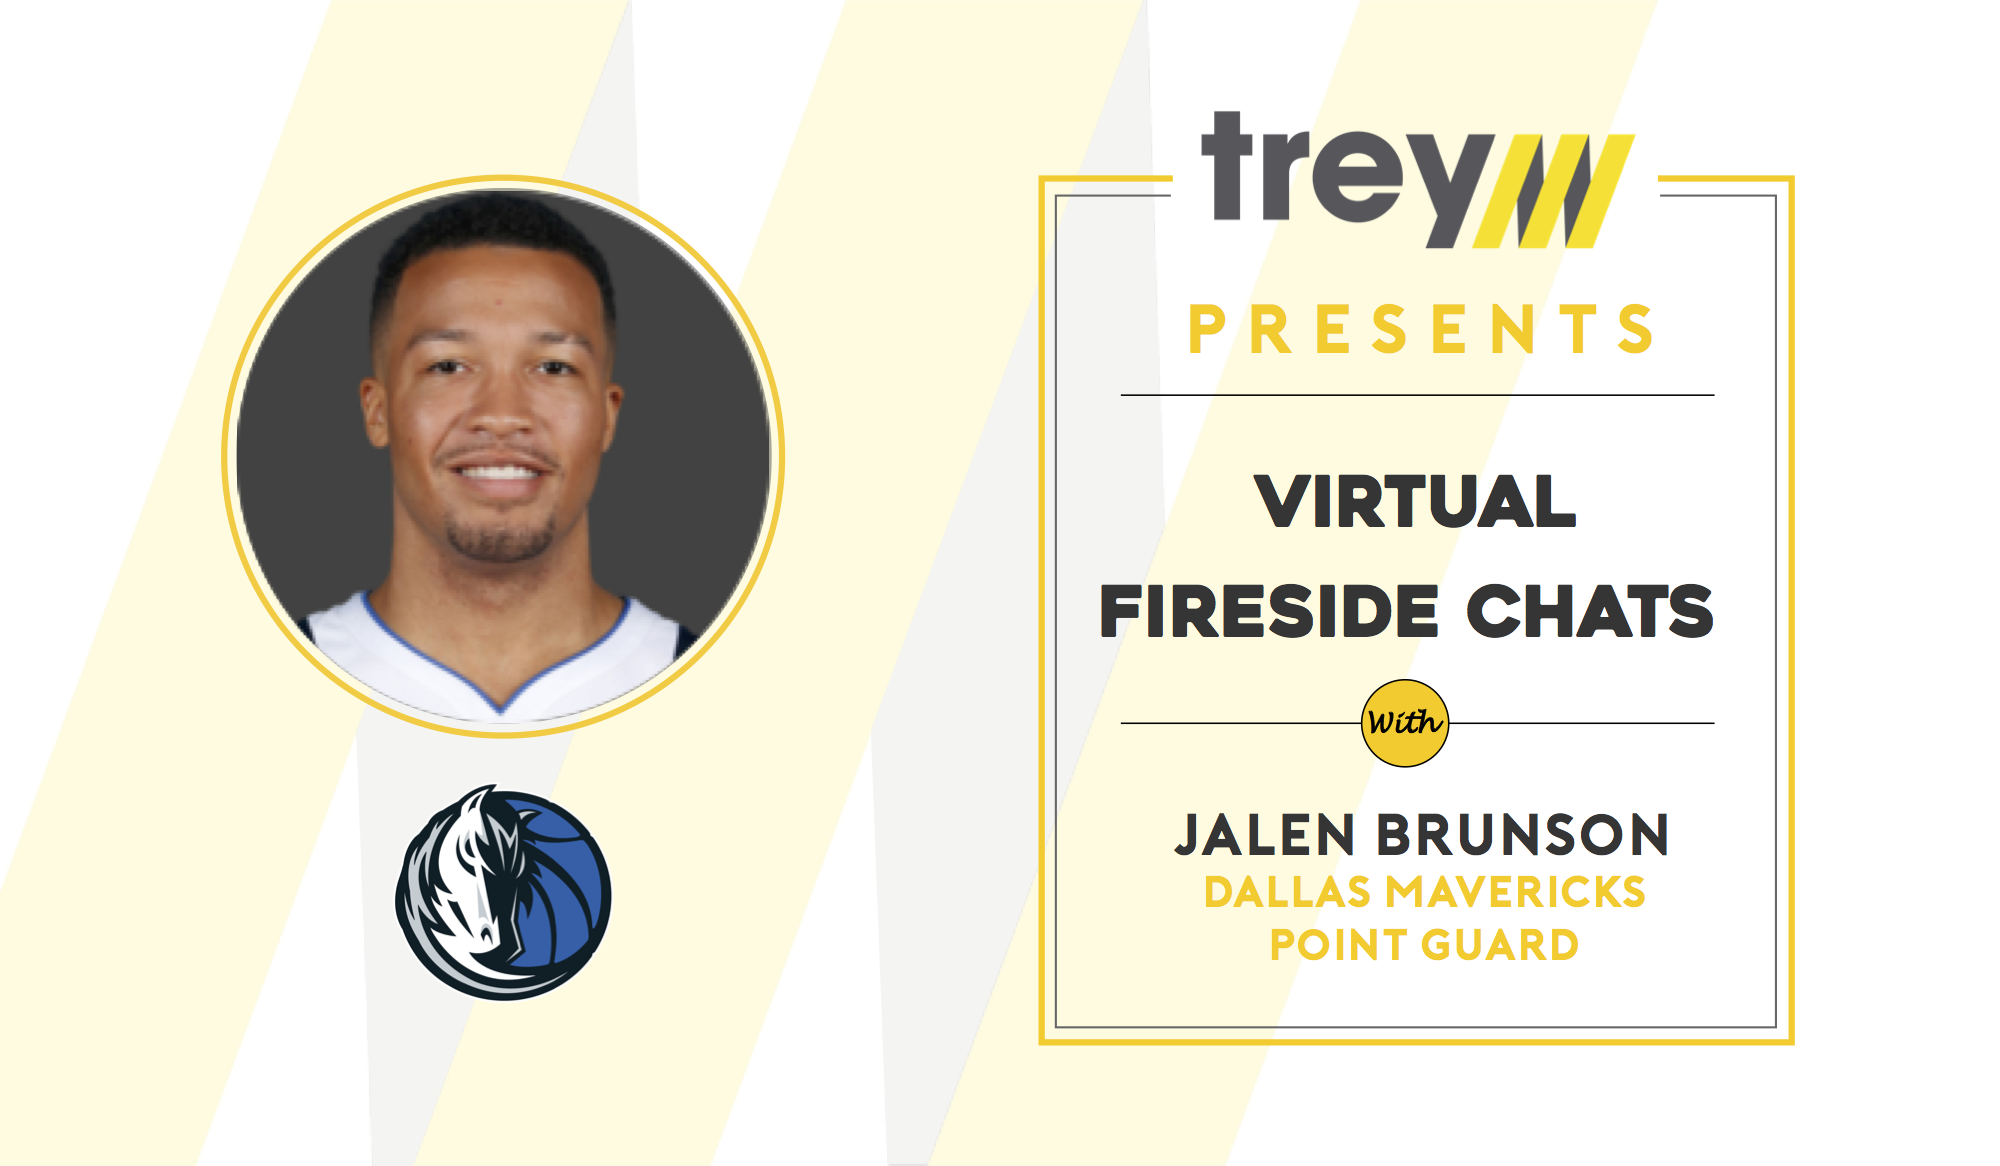 Jalen Brunson Fireside Chat